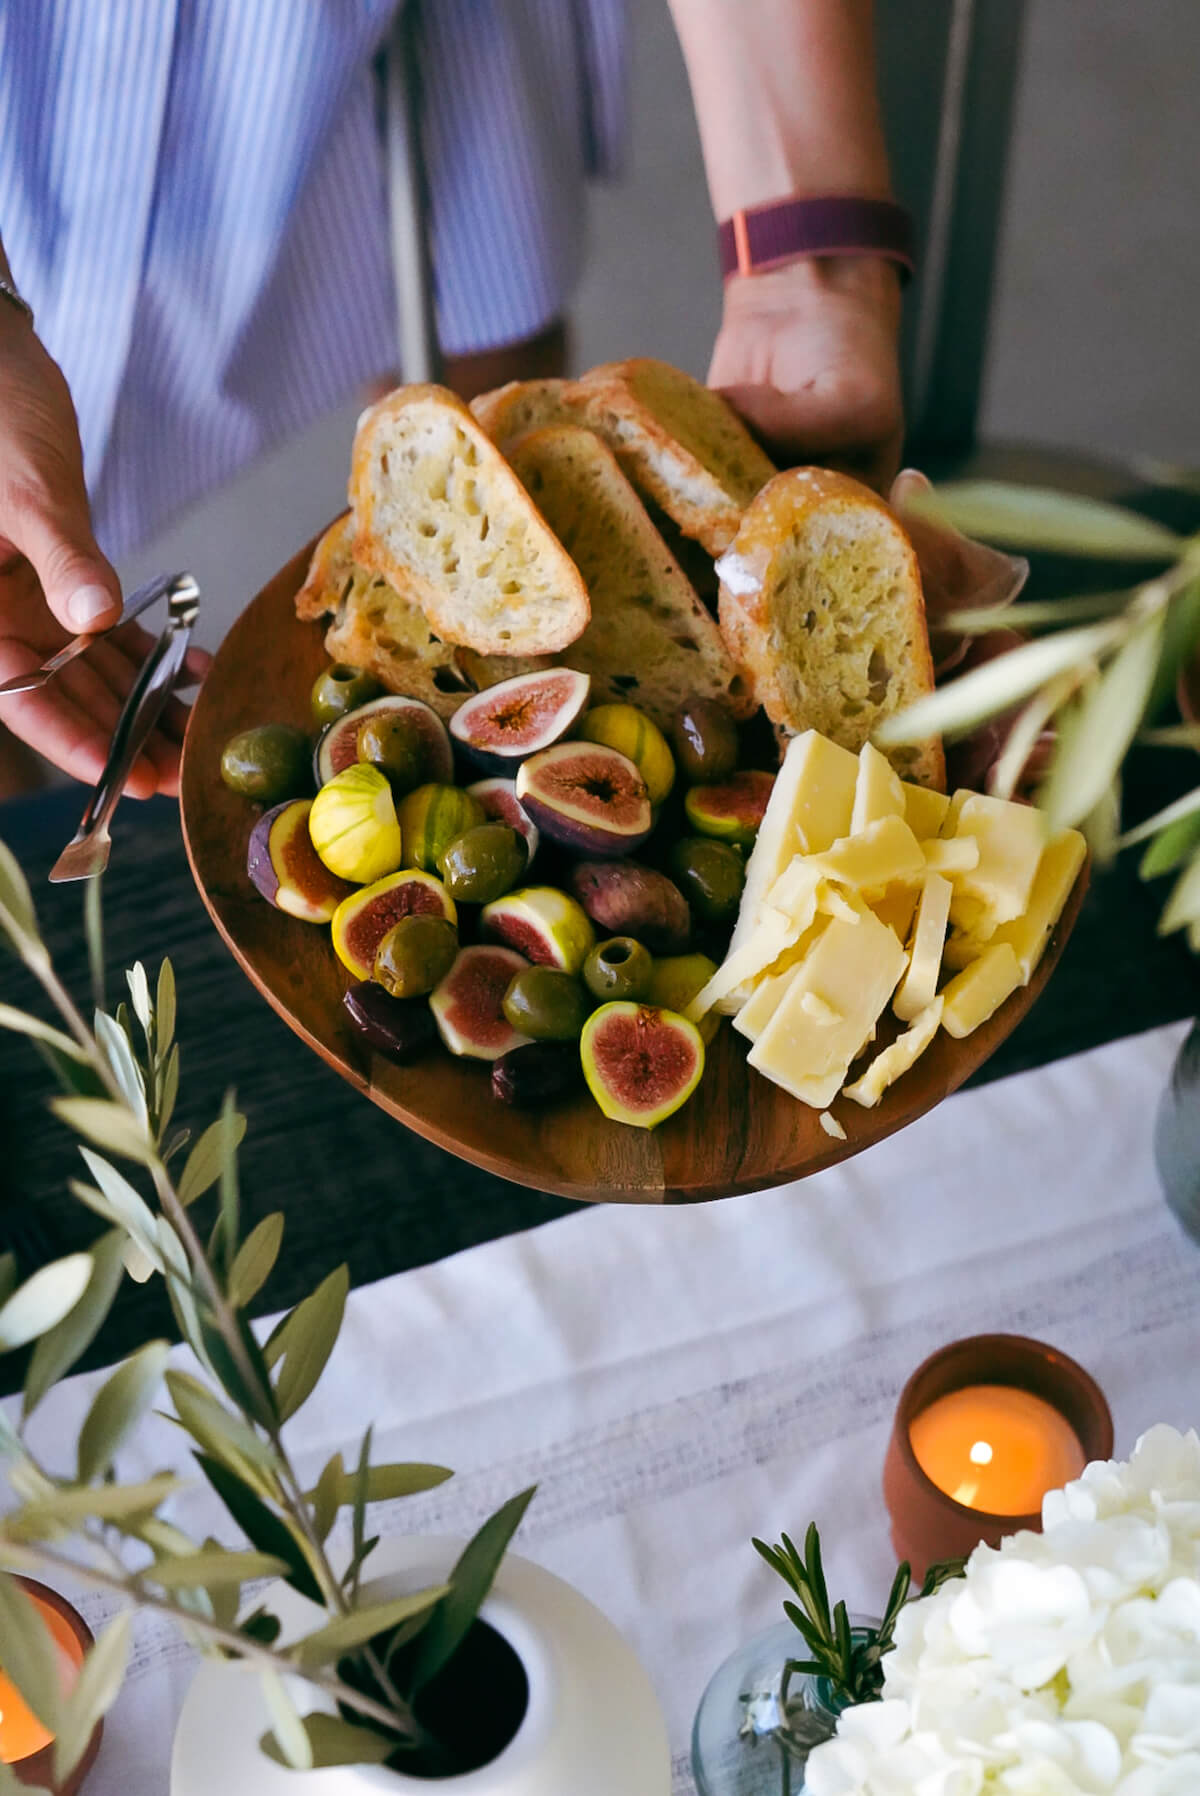 A women holding a fig and cheese platter and setting it on the table.